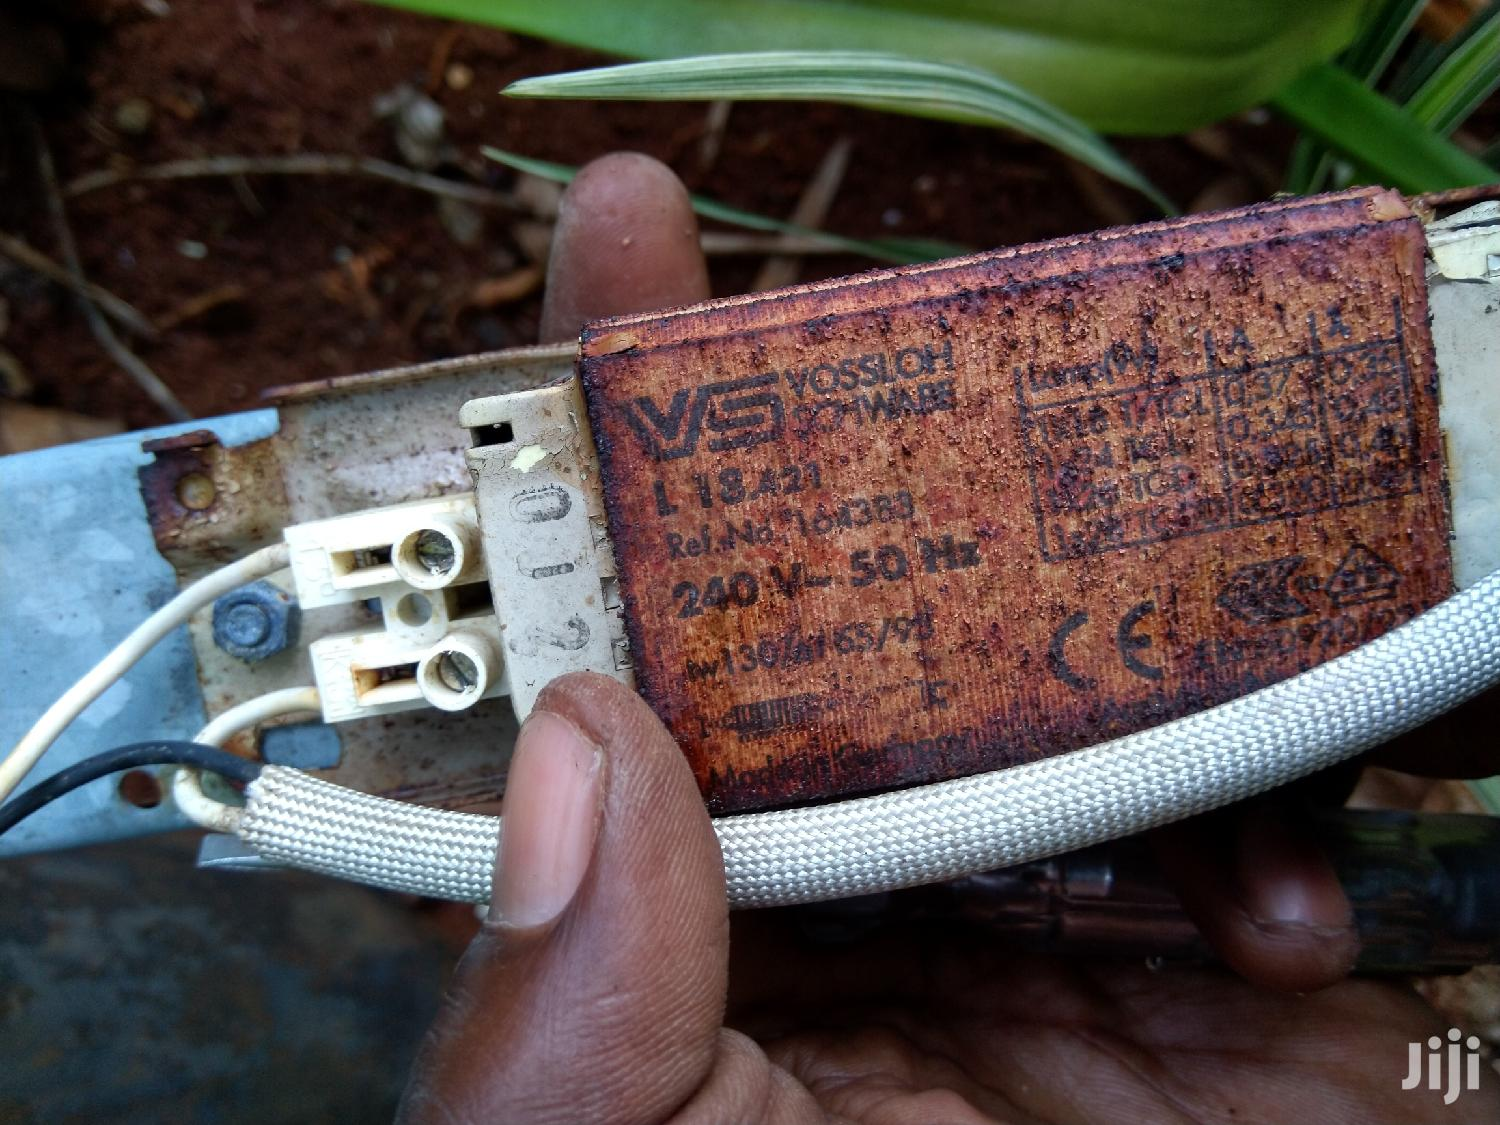 Electrical Technician | Engineering & Architecture CVs for sale in Nairobi Central, Nairobi, Kenya